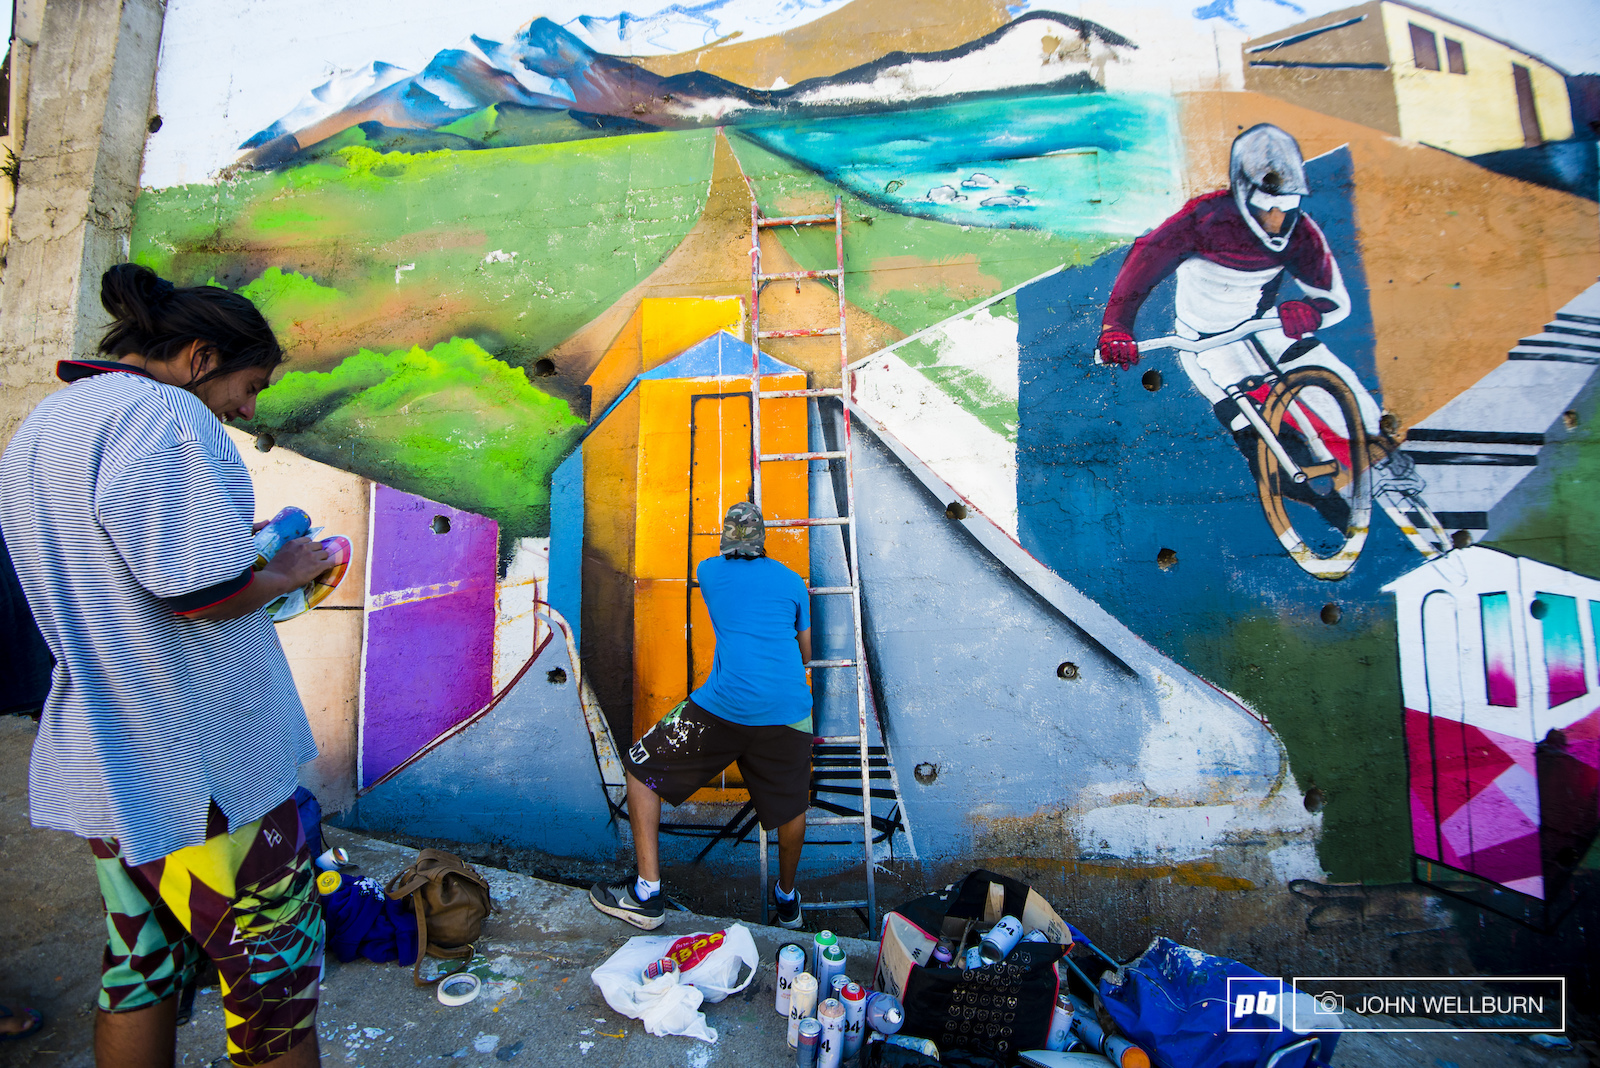 Mural artists work hard in Valparaiso. The city is covered with some of the best mural art in the world. Here artists prepare a custom mural for the 15th Anniversary edition of Valparaiso Cerro Abajo